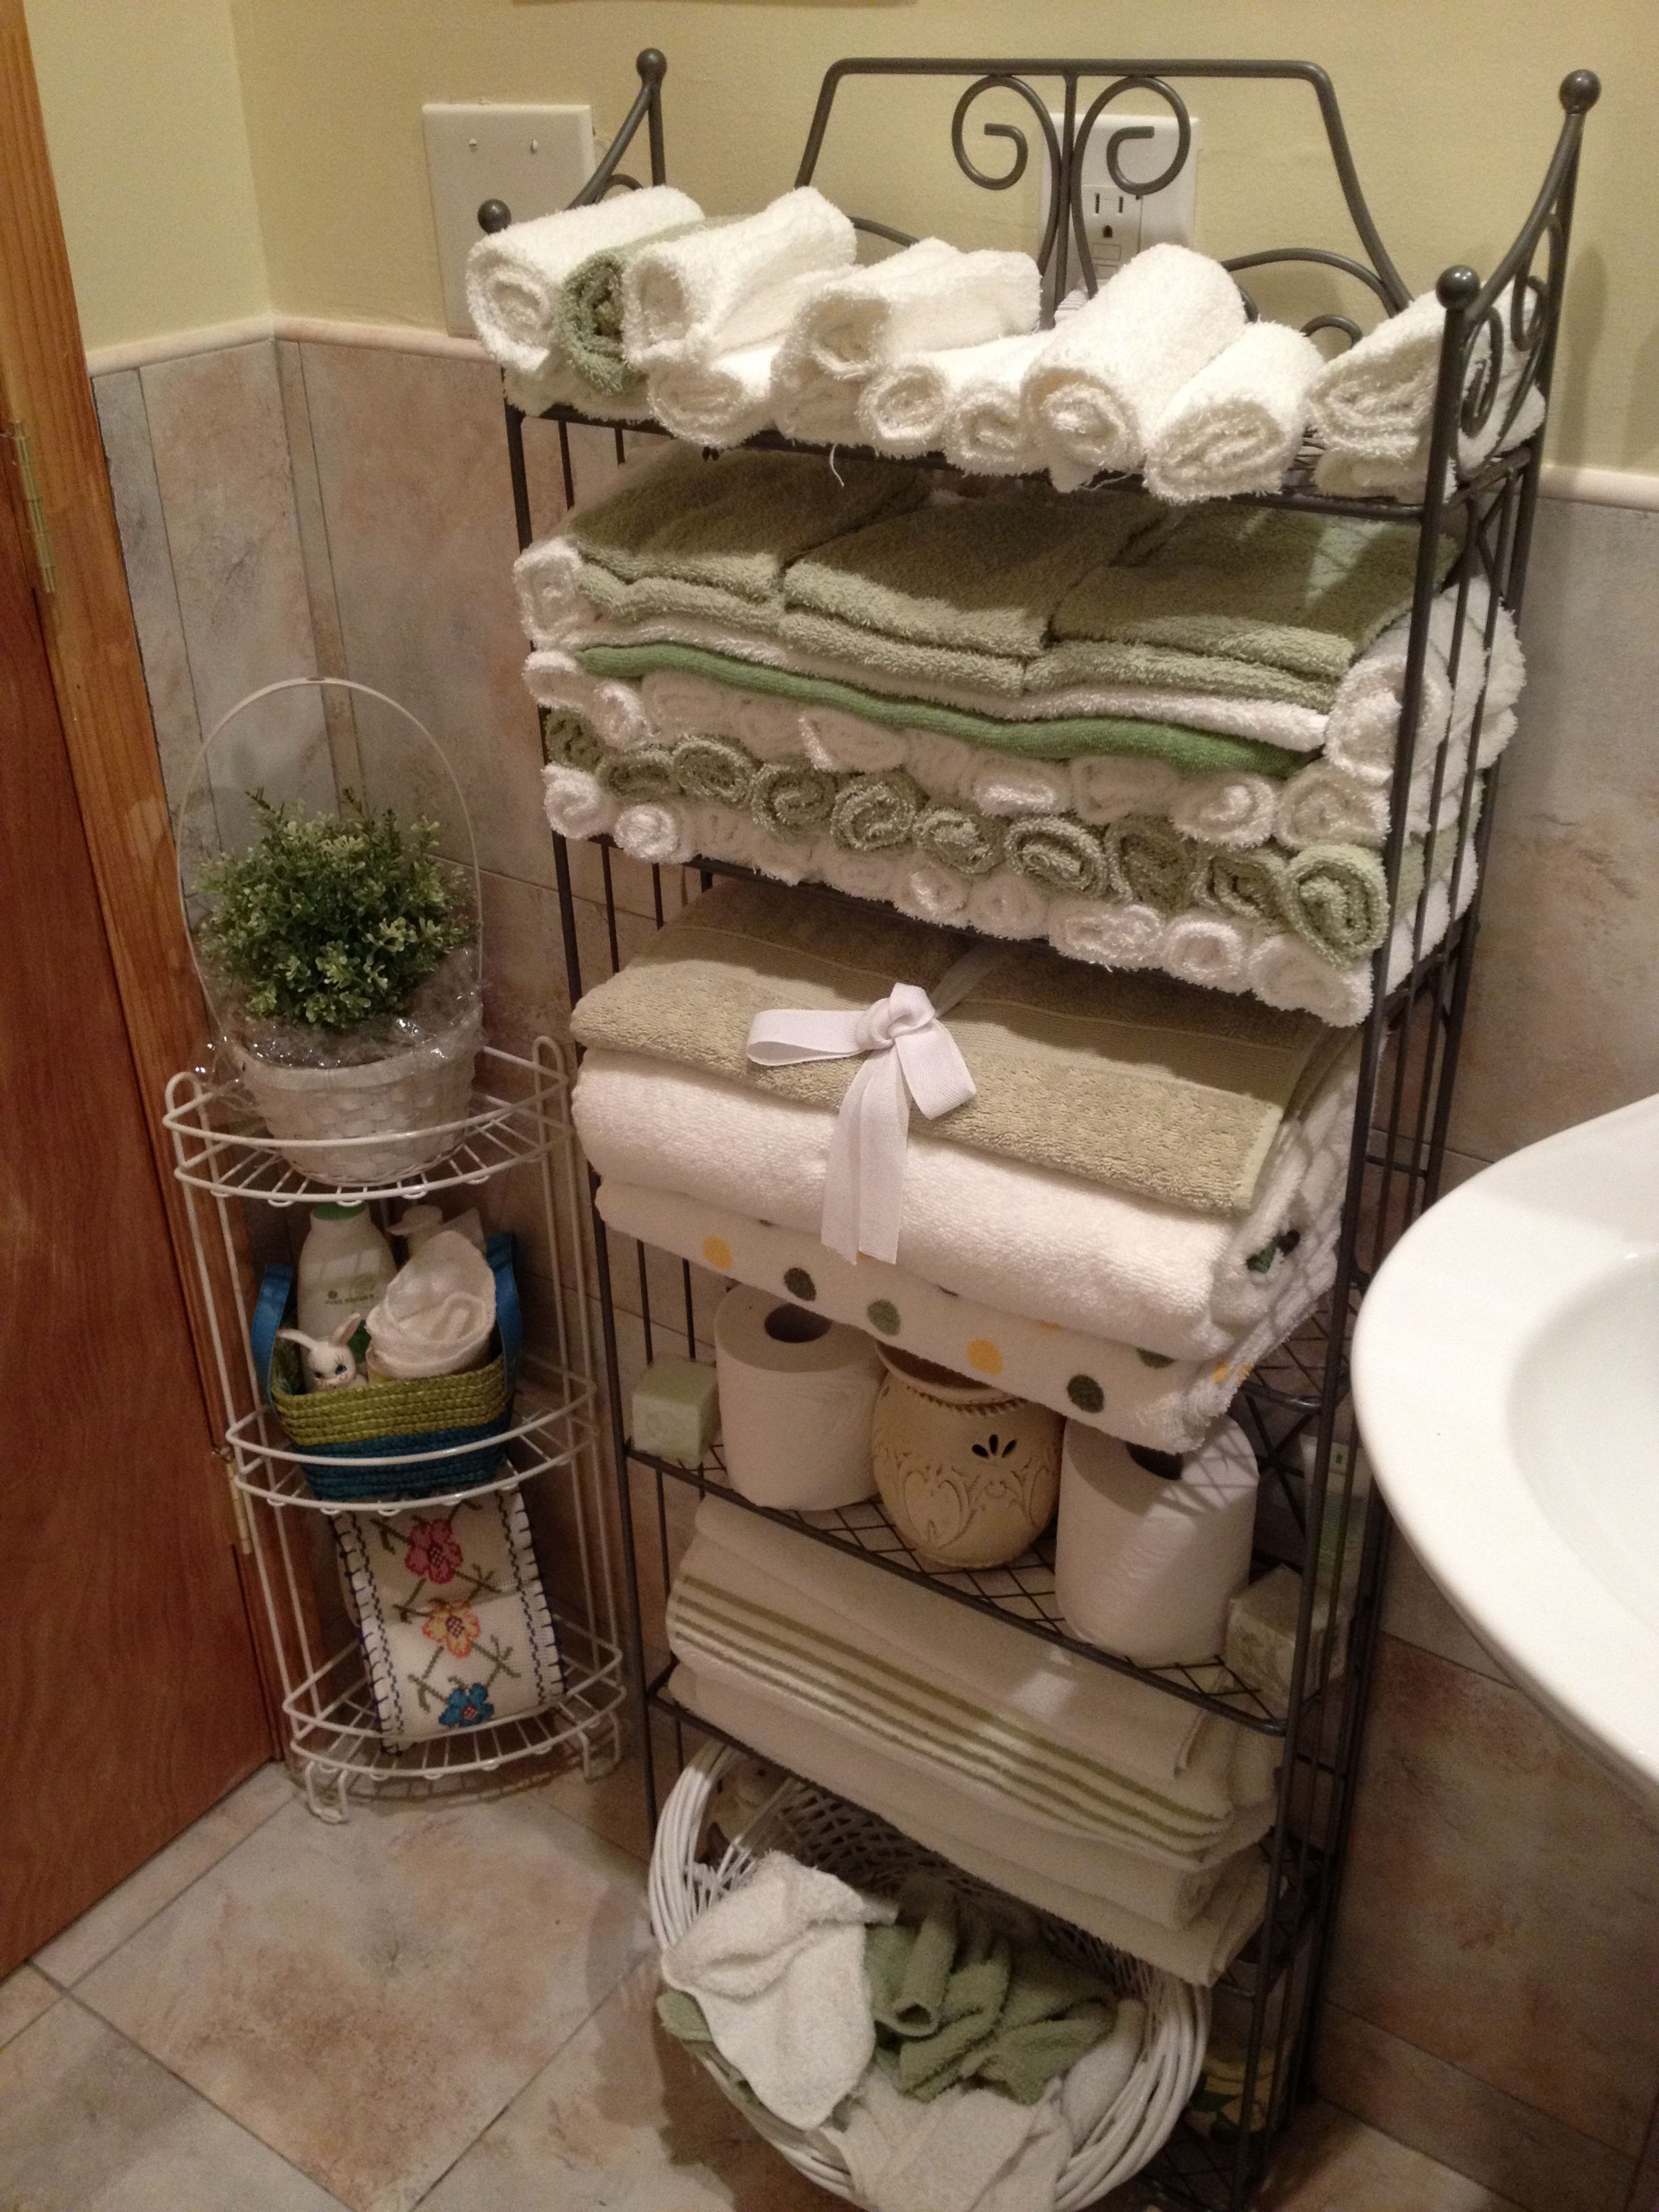 My Aunt Uses Washcloths Instead Of Hand Towels To Dry Hands Guests Put The Used Washcloths In A Basket She Then Washes The Towel Basket Towel Restroom Decor